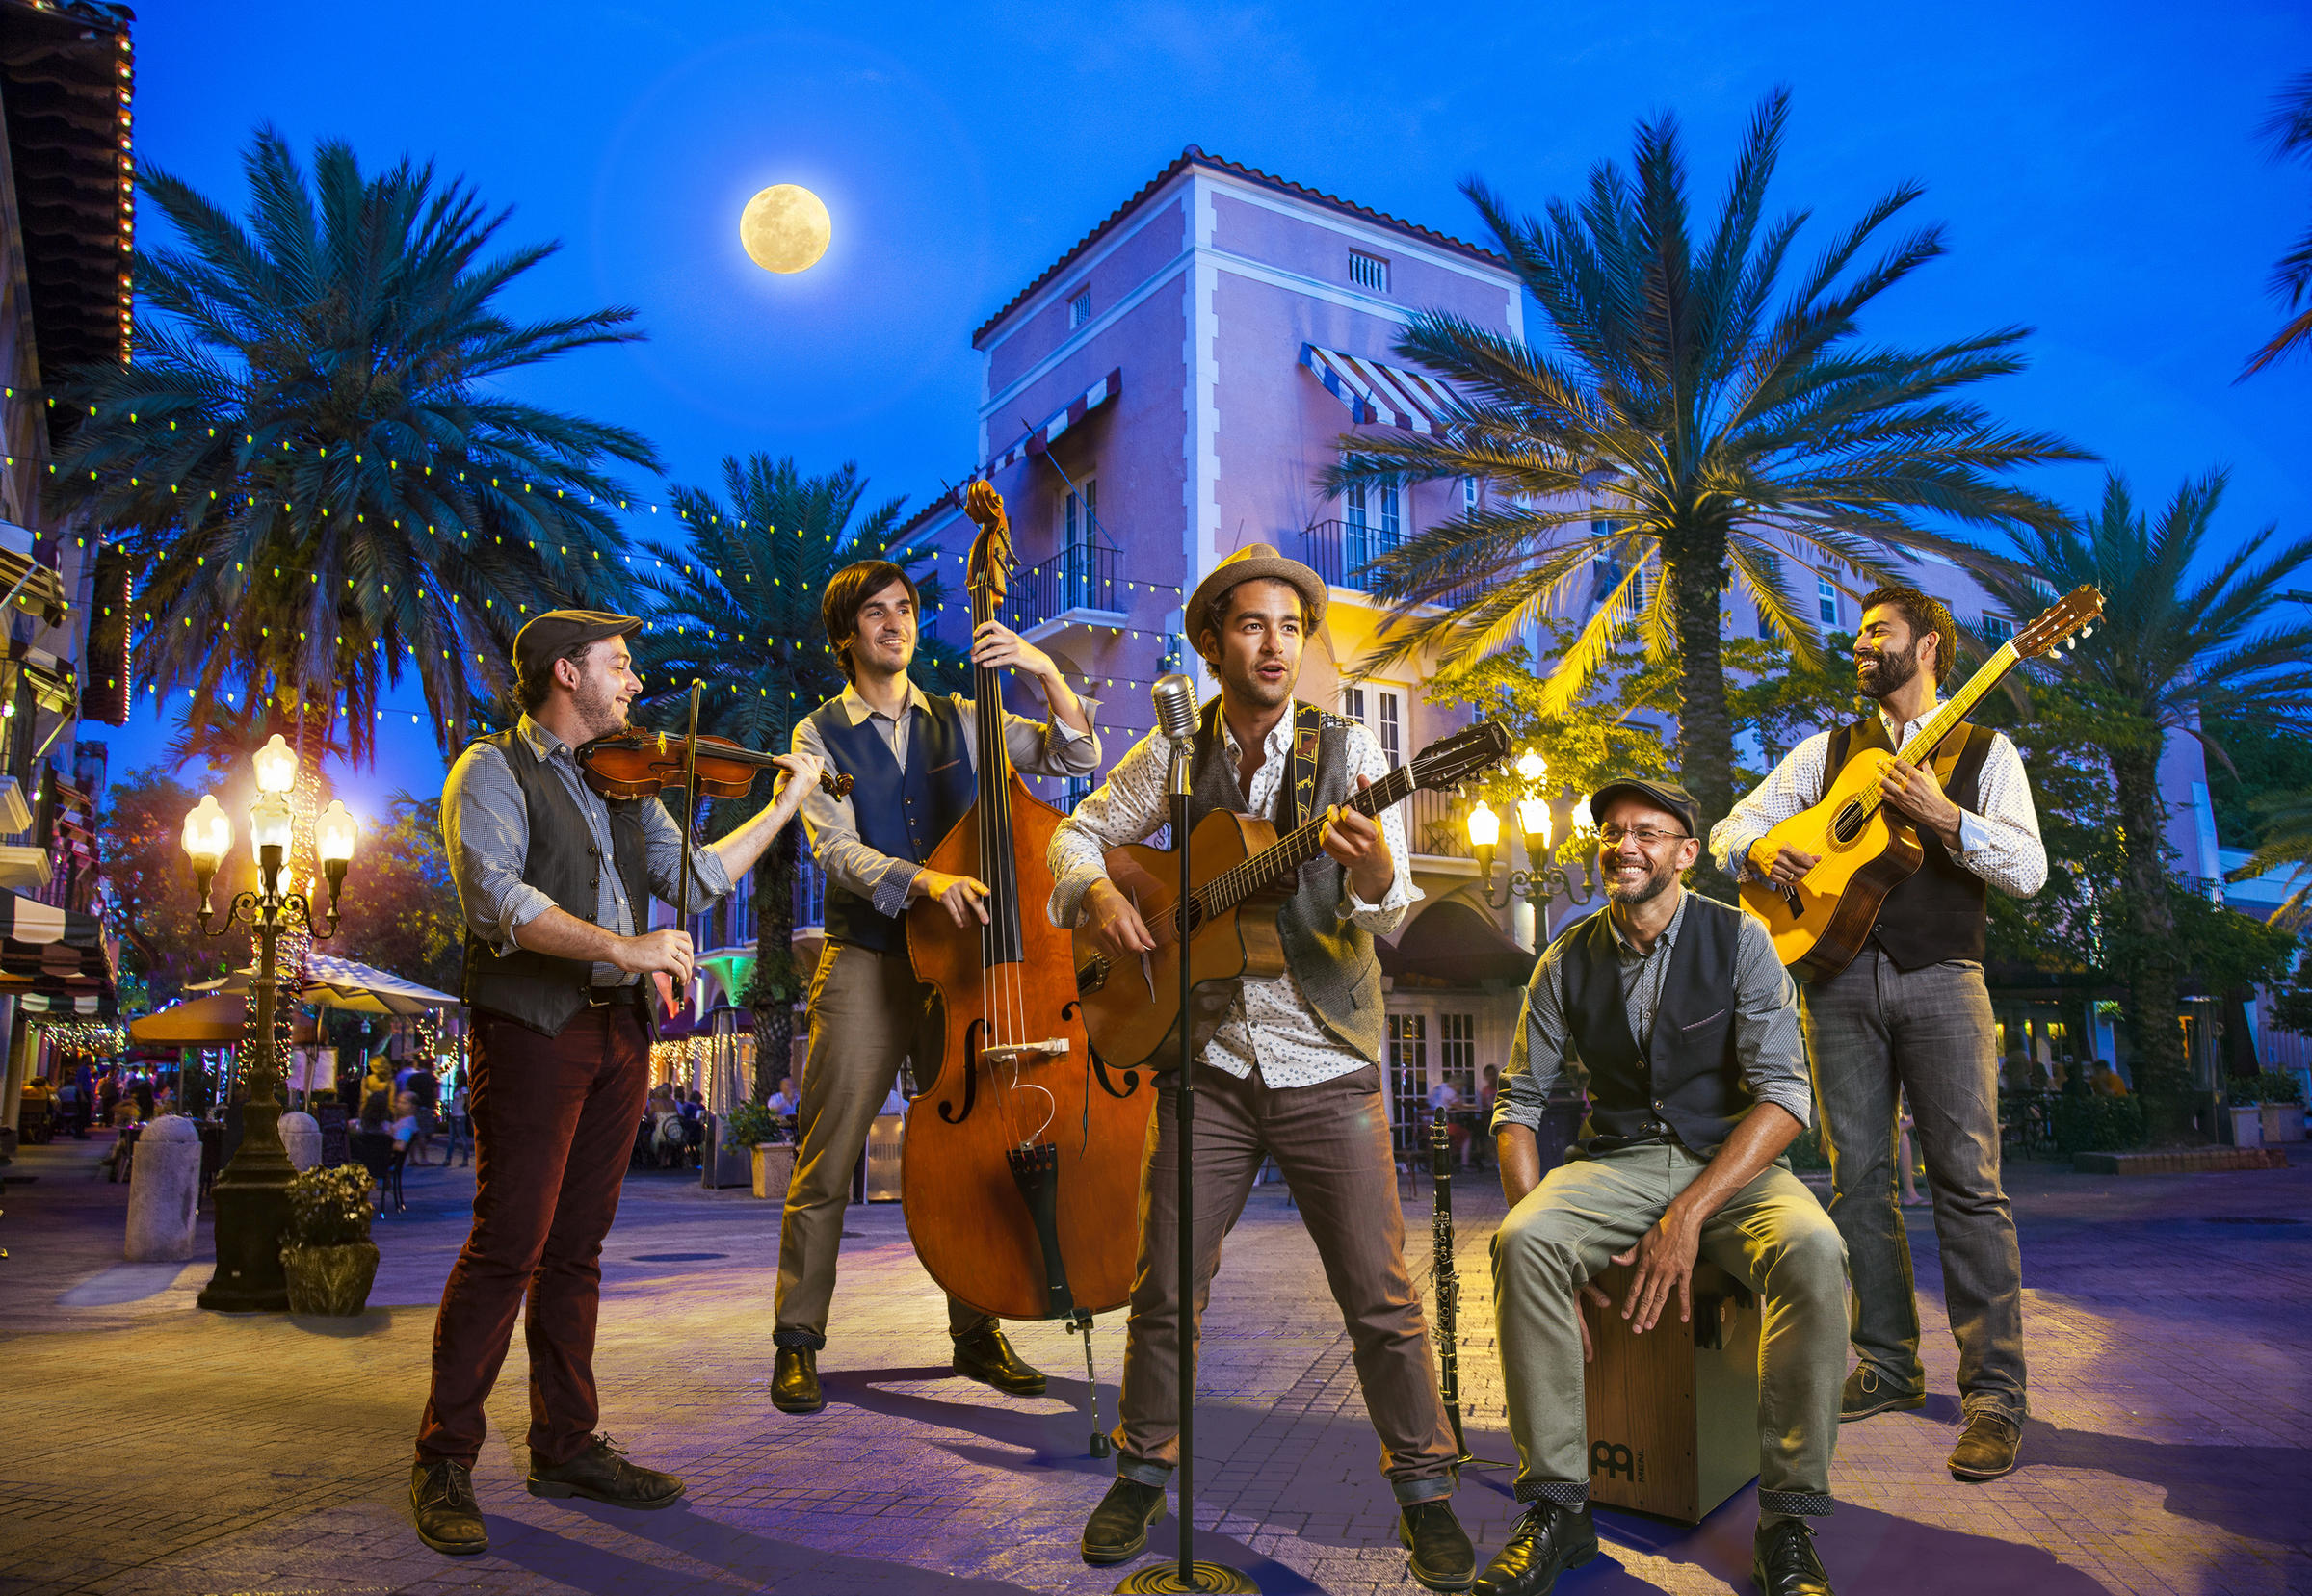 A French Musician Finds Niche With South Florida Audiences | WLRN